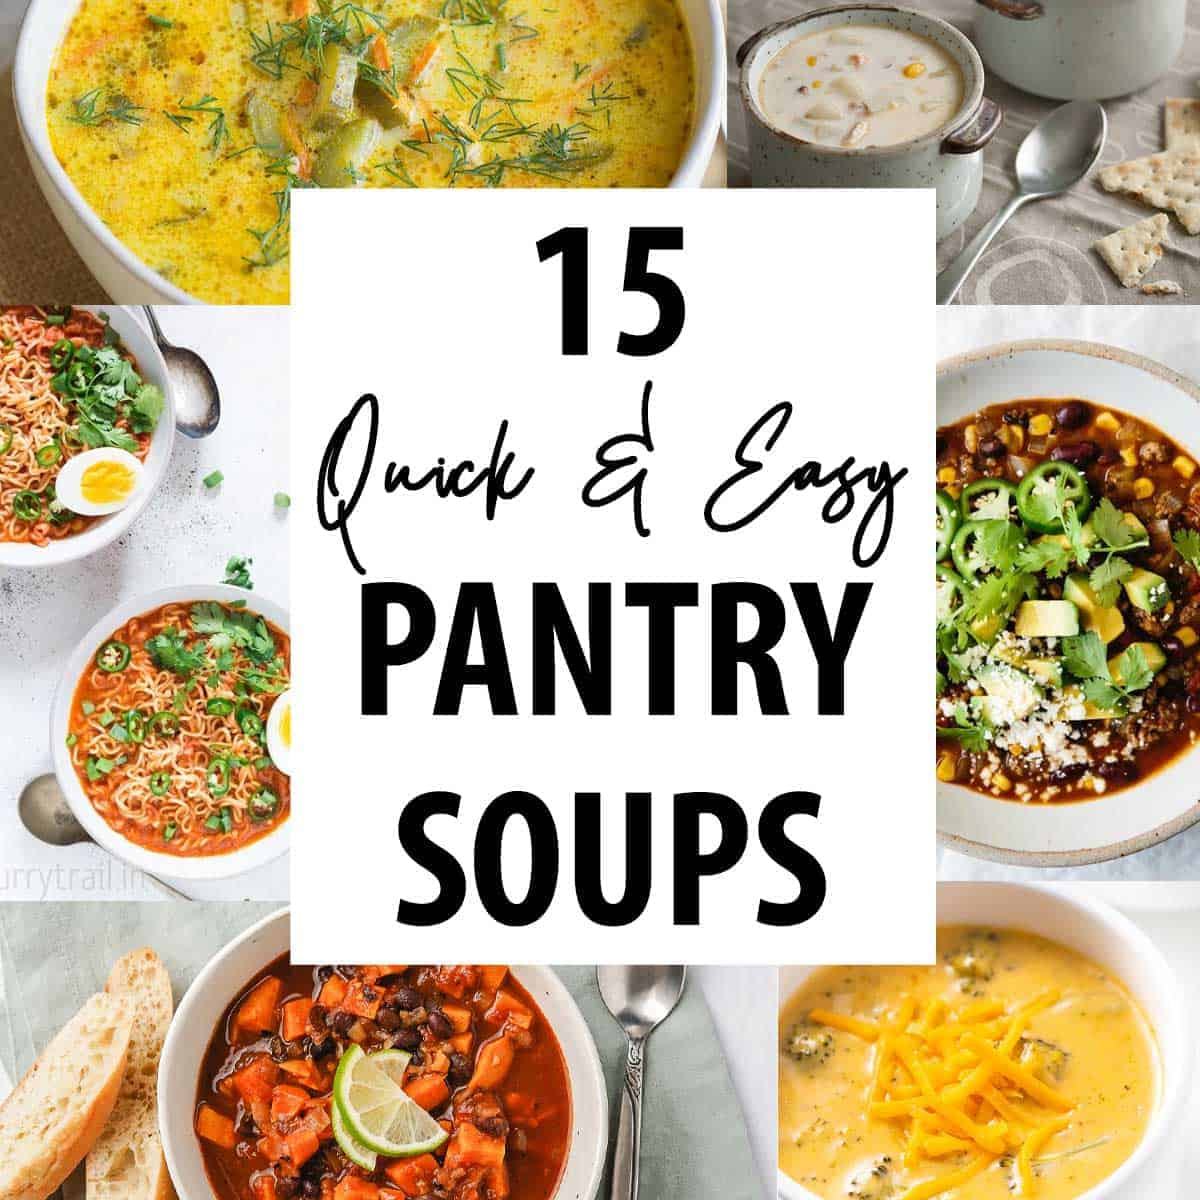 Quick and Easy Pantry Soup Recipes Photo Collage with text overlay